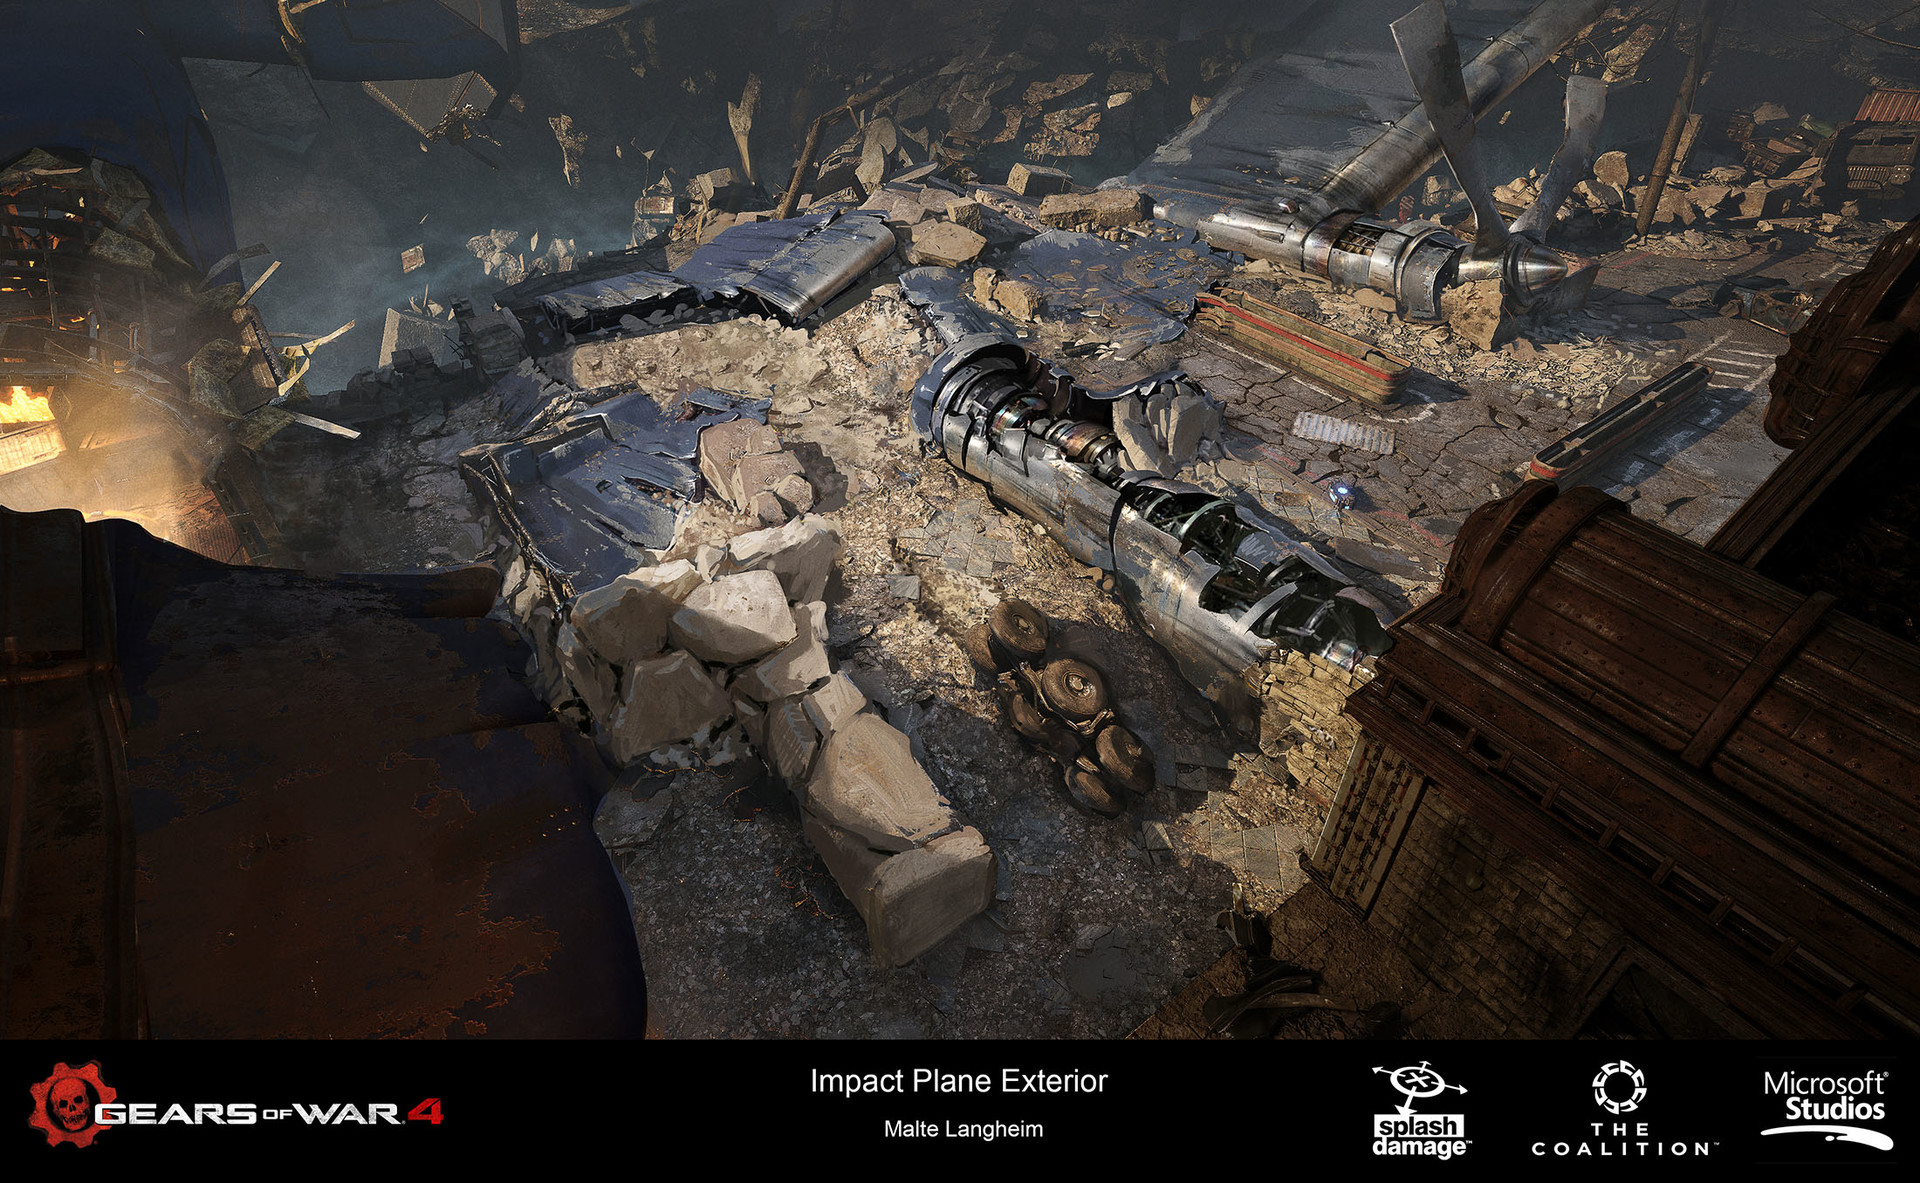 ArtStation - Gears of War 4 - Impact Concepts, Malte Langheim